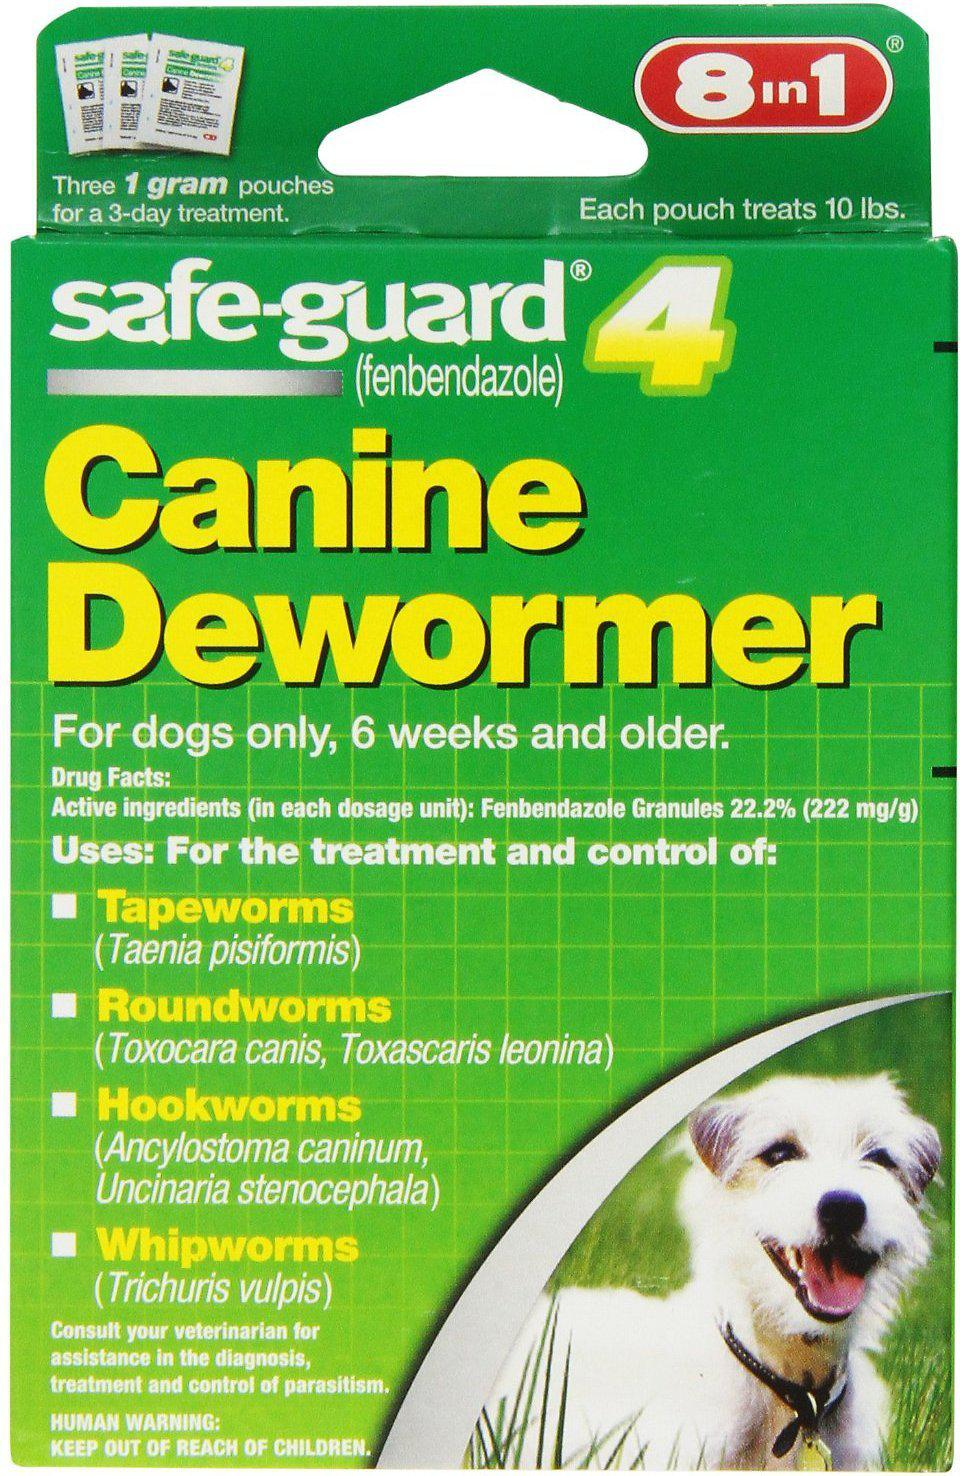 8in1 Safe-Guard 4 Canine Dewormer Small Dog Supply-Le Pup Pet Supplies and Grooming